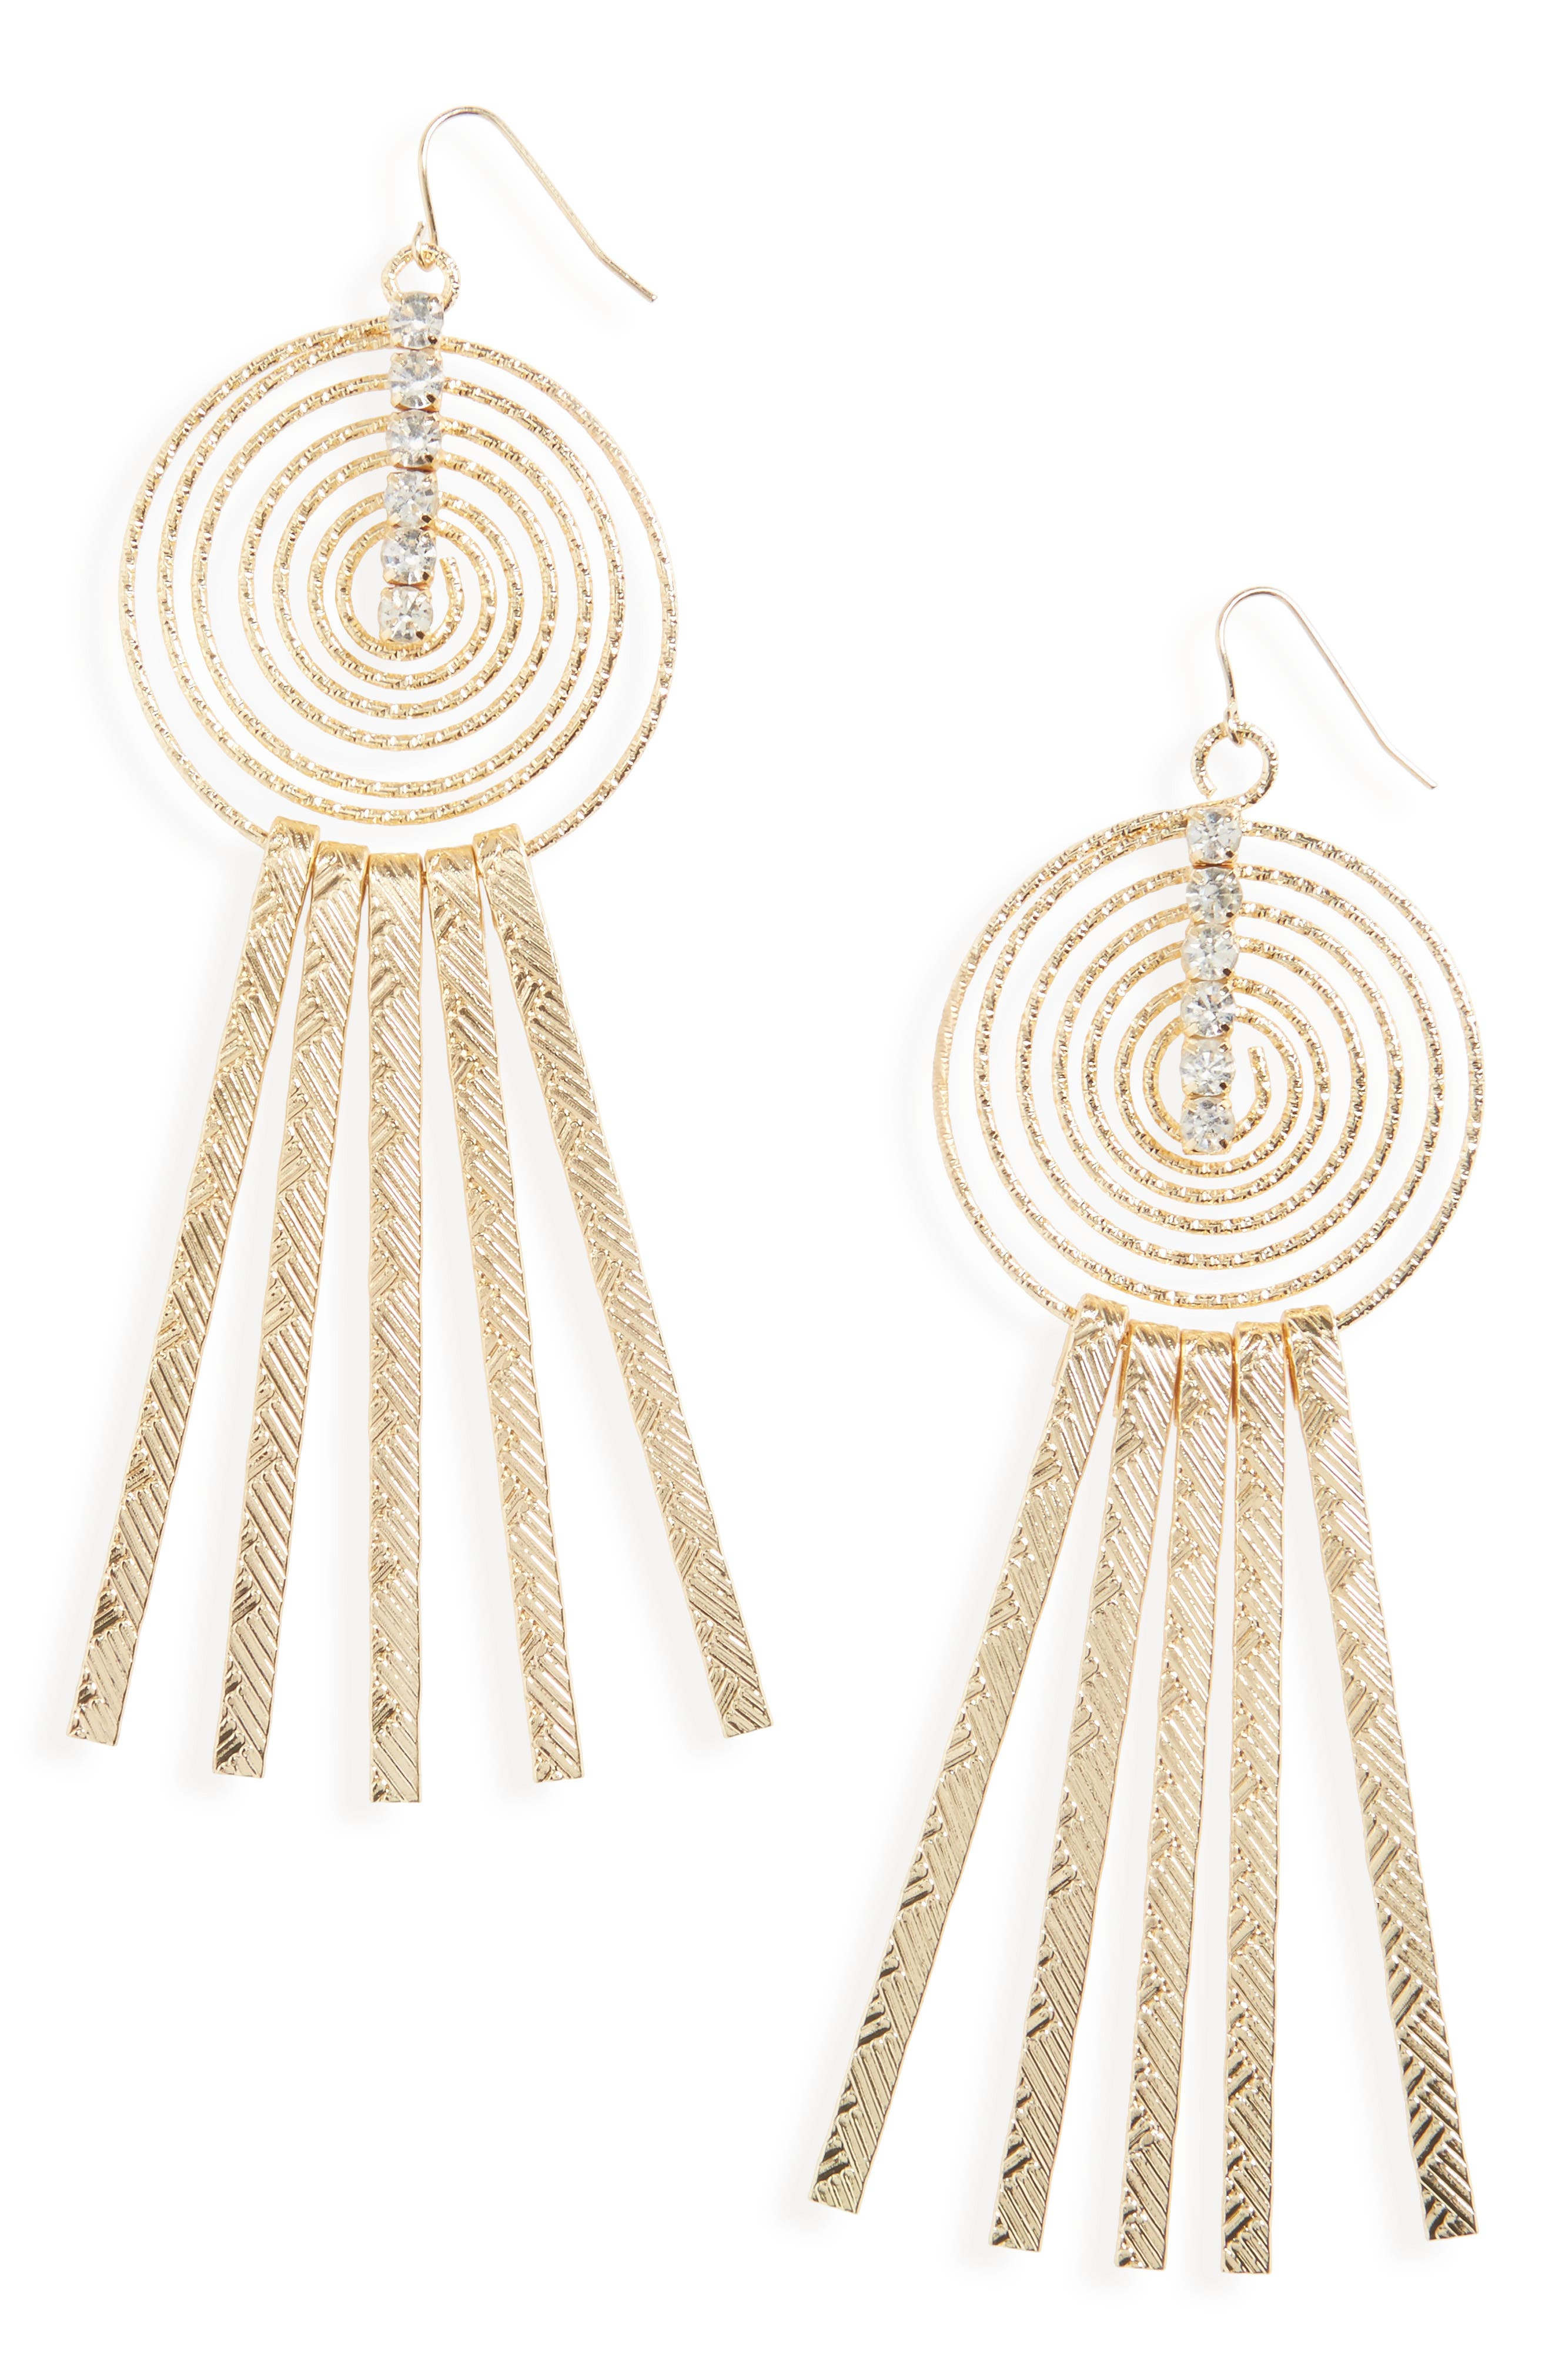 Swirly Sticks Drop Earrings,                             Main thumbnail 1, color,                             710